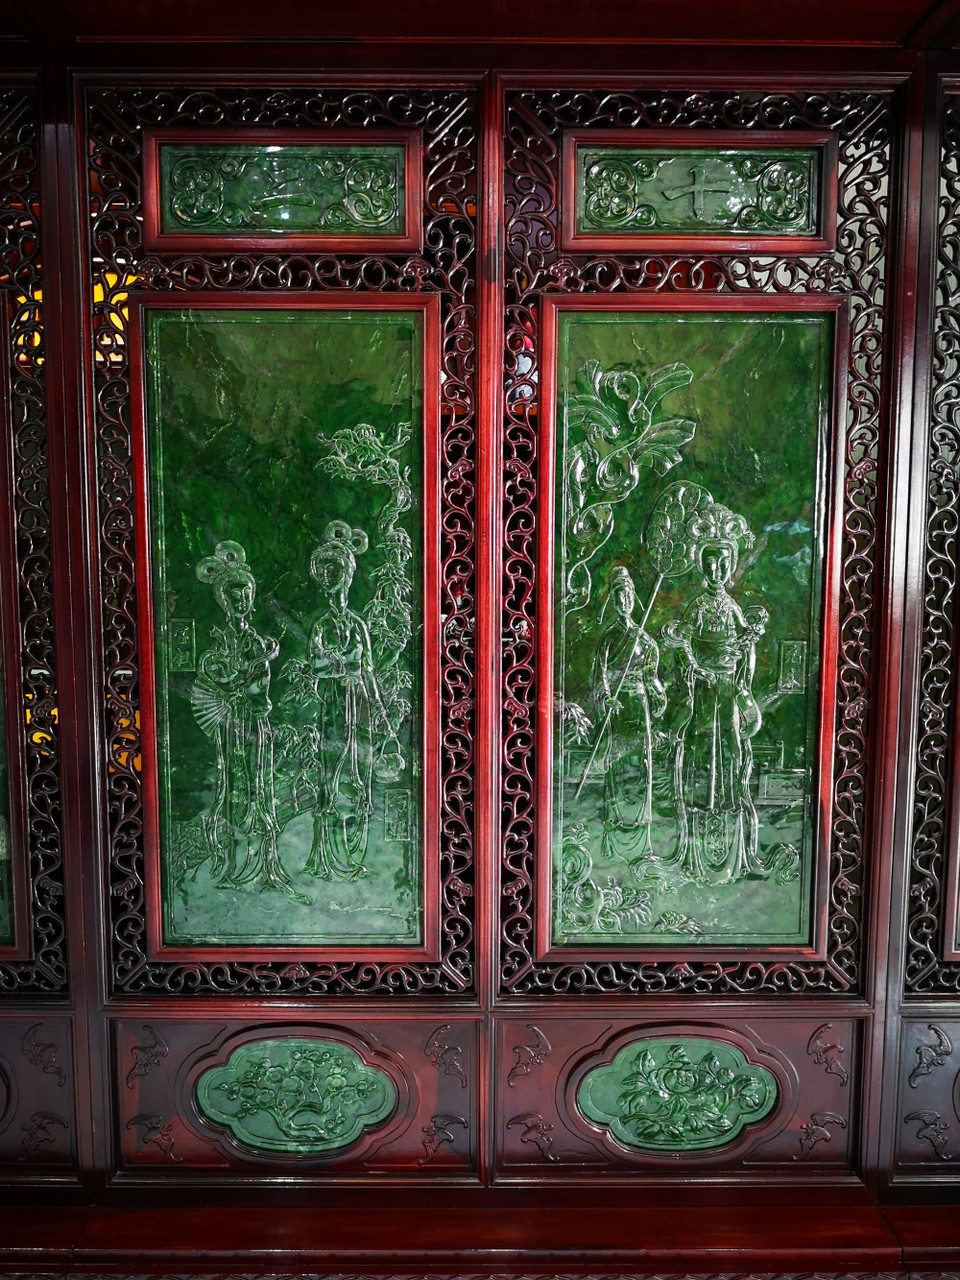 5.3m*2.6m Spinach Green Jade Wood Chinese Screen 金陵十二钗碧玉屏风 Twelve Beauties of Jinling in Dream of the Red Chamber